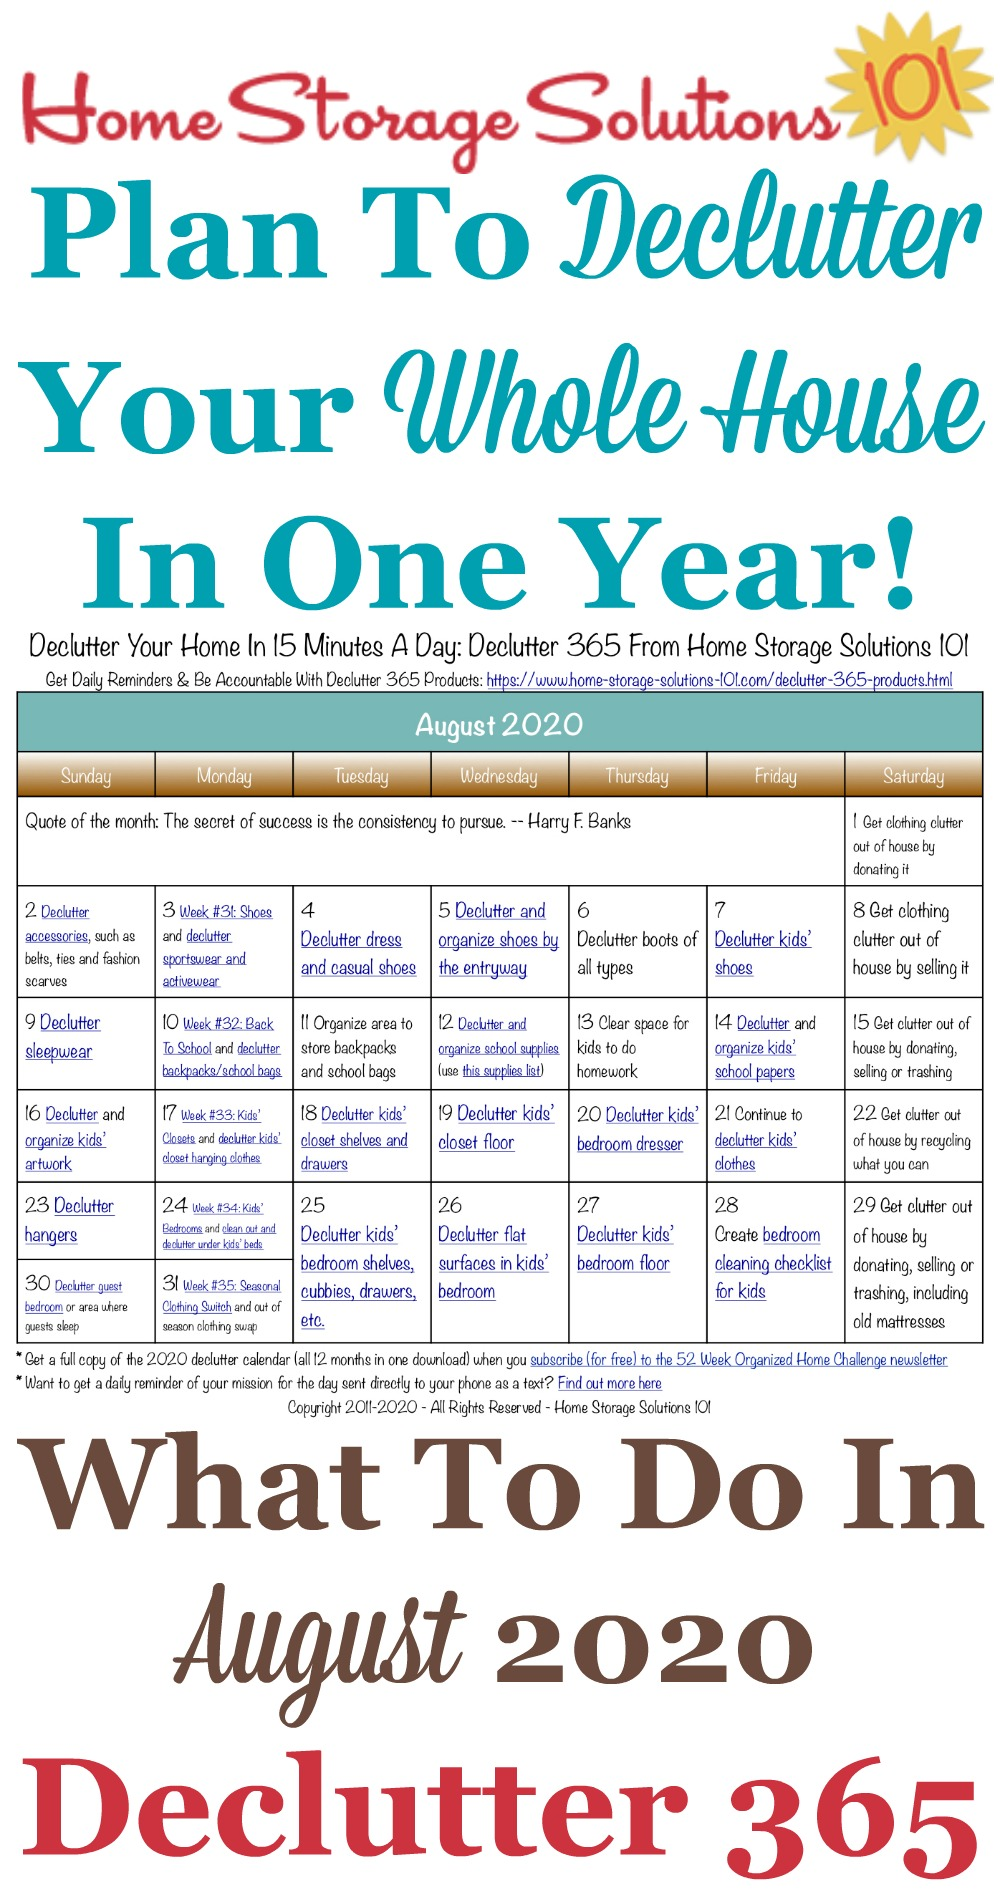 Free printable August 2020 #decluttering calendar with daily 15 minute missions. Follow the entire #Declutter365 plan provided by Home Storage Solutions 101 to #declutter your whole house in a year.